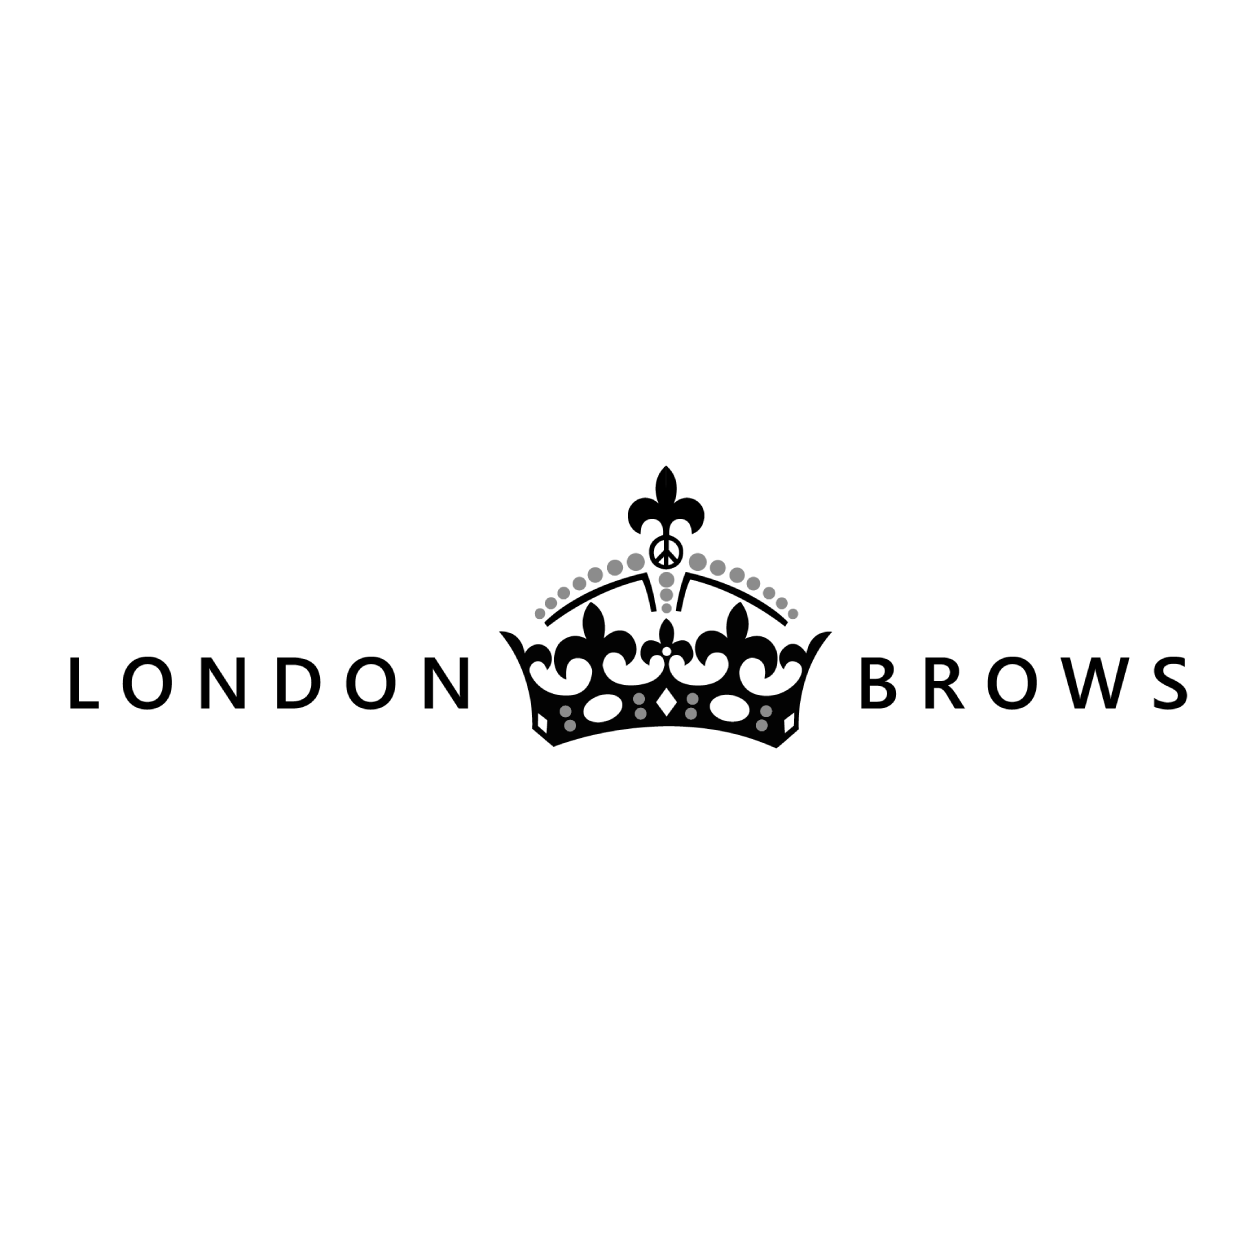 xo-lashes-by-ann-certification-logos_london brows-grayscale.png